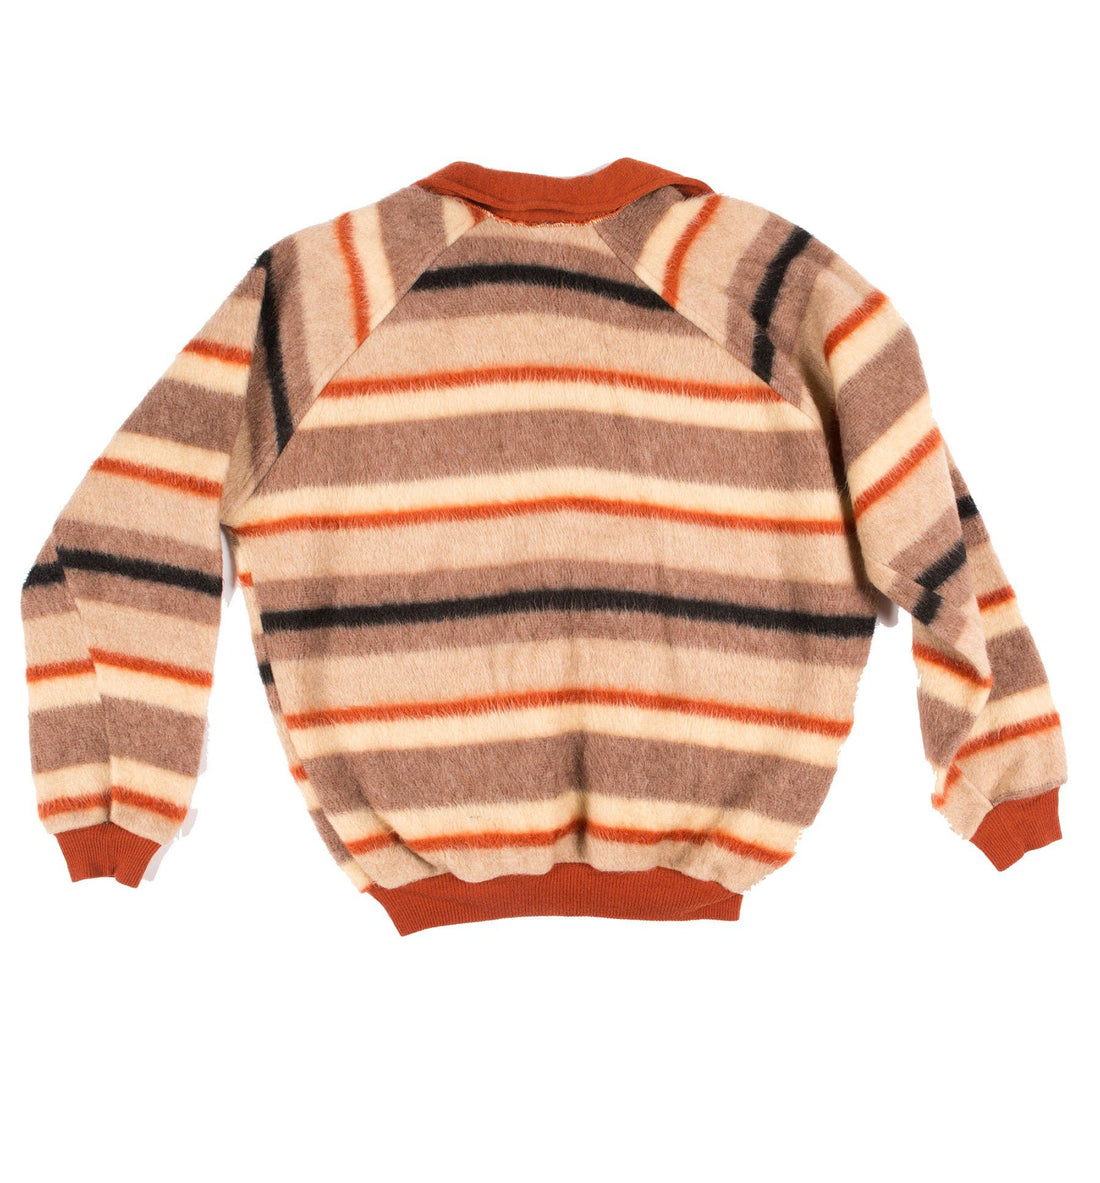 70's JCPenny's Pullover Sweater - Vintage - Iron and Resin